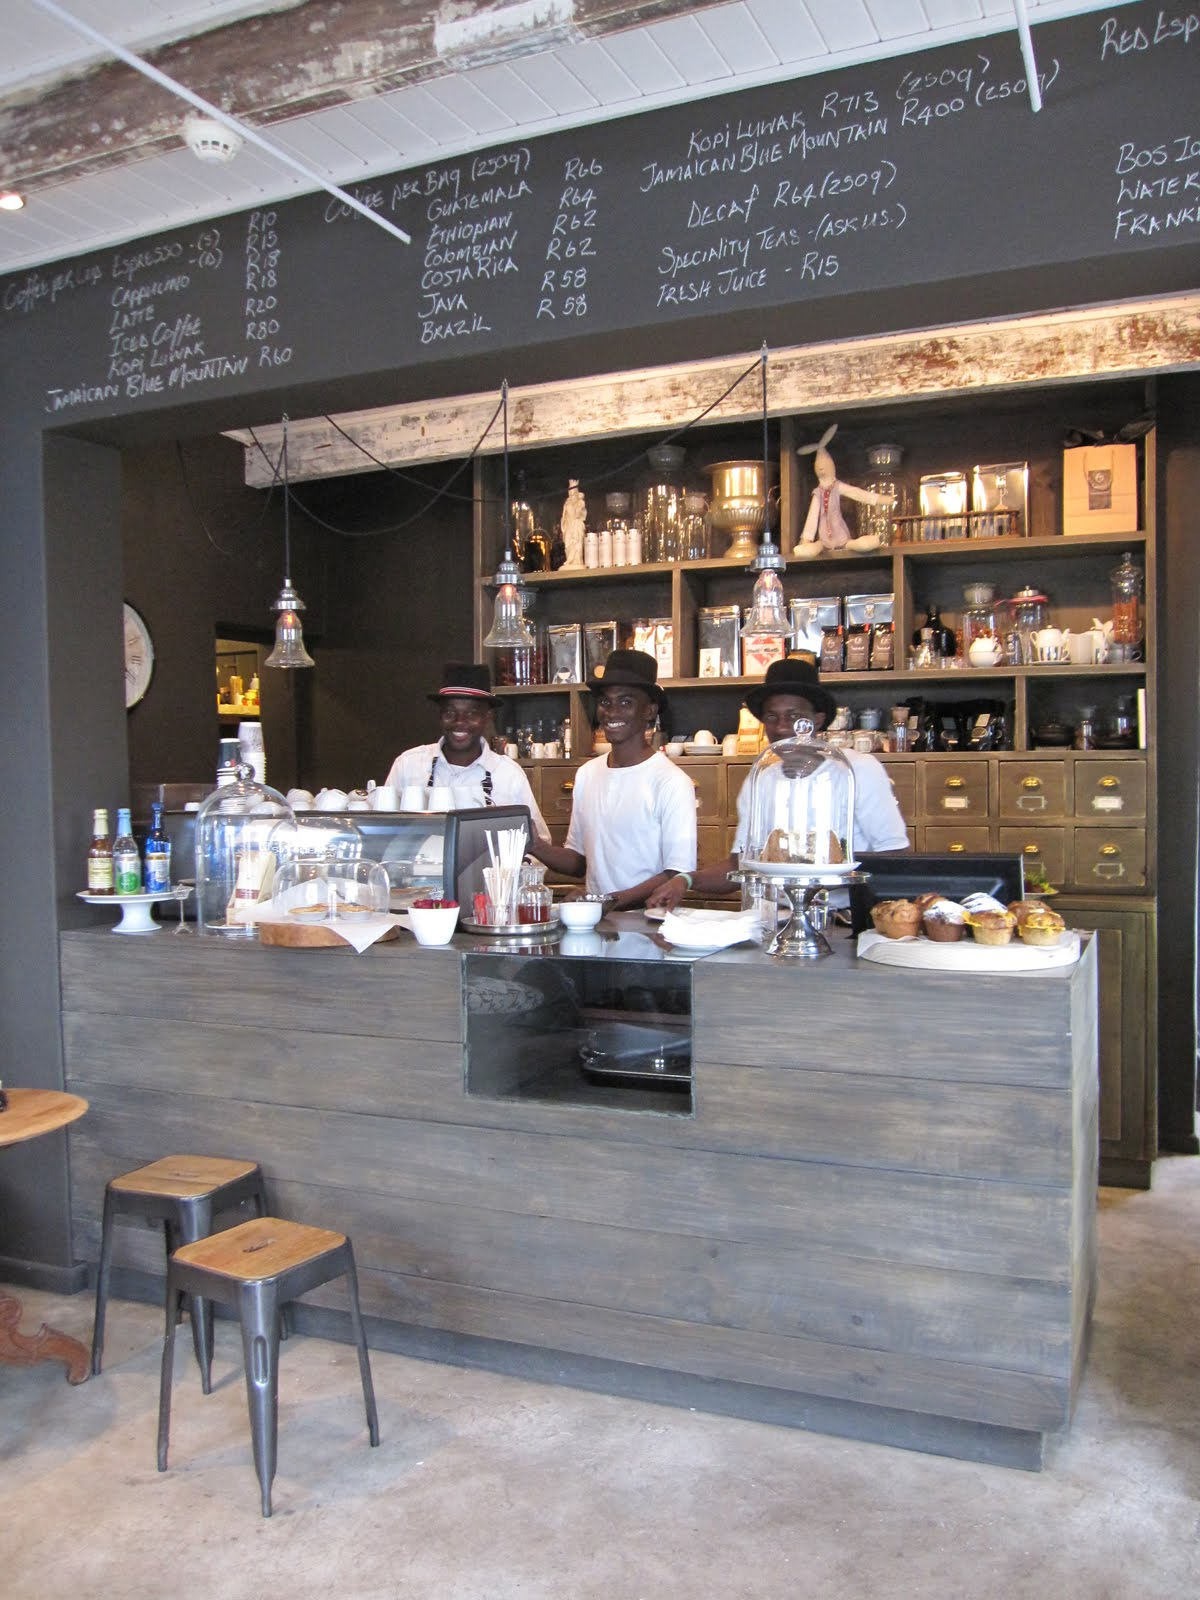 1000 images about best coffee shop on pinterest search for Coffee shop setup and decor